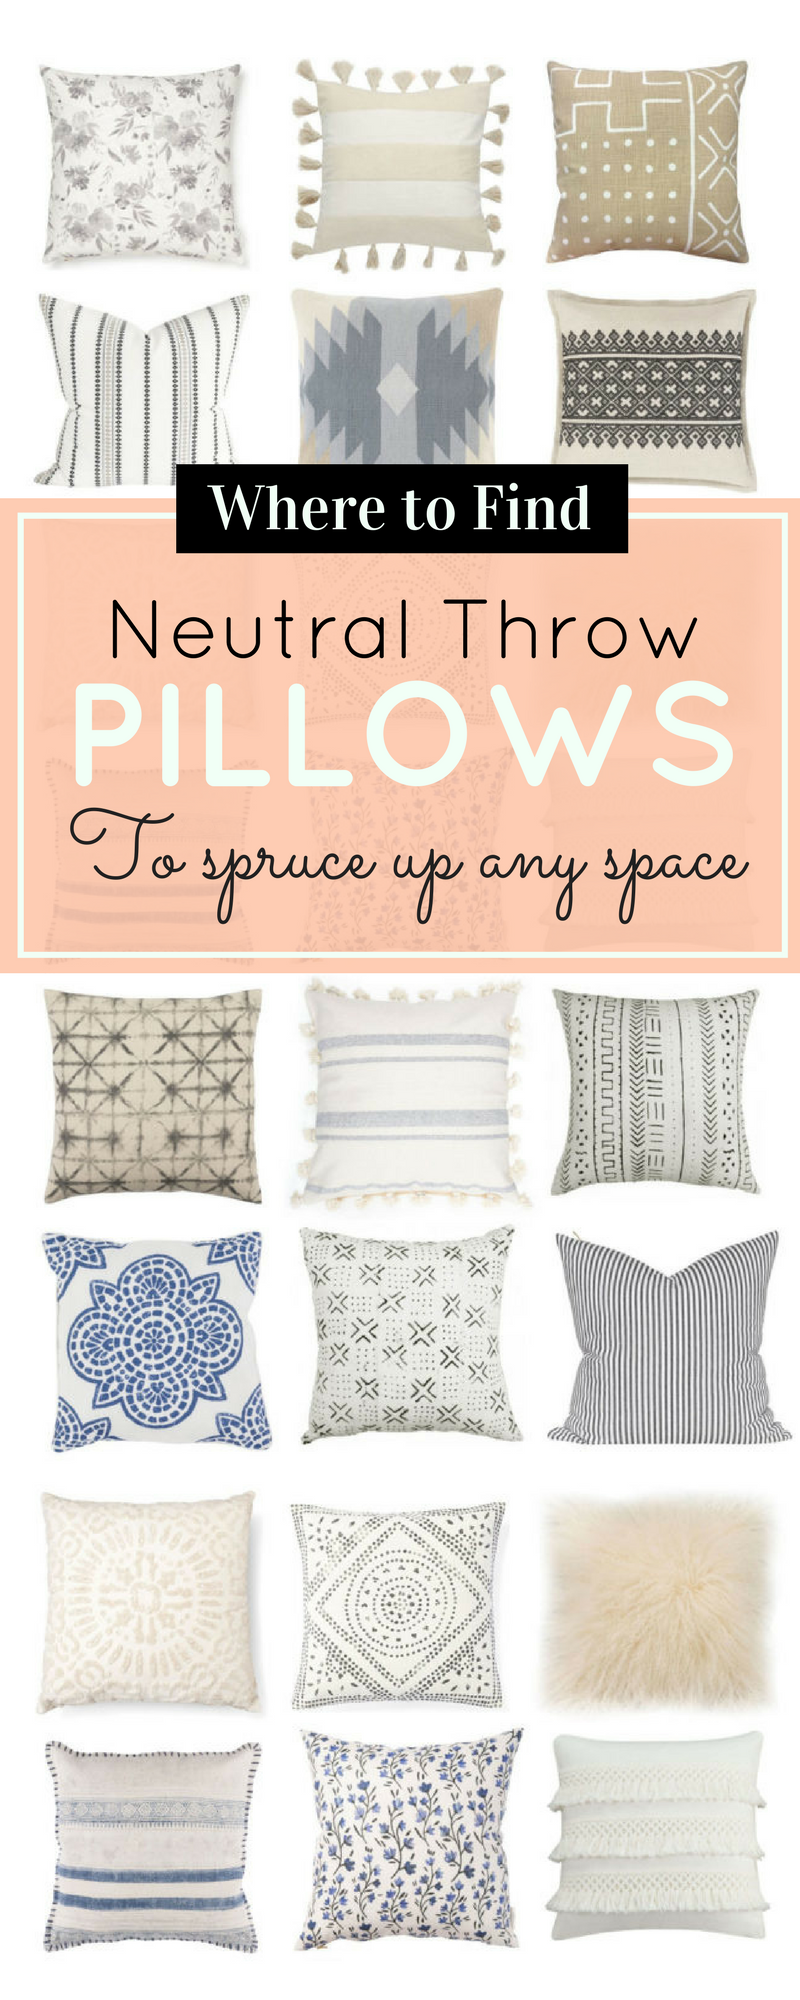 18 Neutral Throw Pillows to Spruce Up Any Space, because pillows make every room happier, more styled and pulled together. Click through for the details. | glitterinc.com | @glitterinc